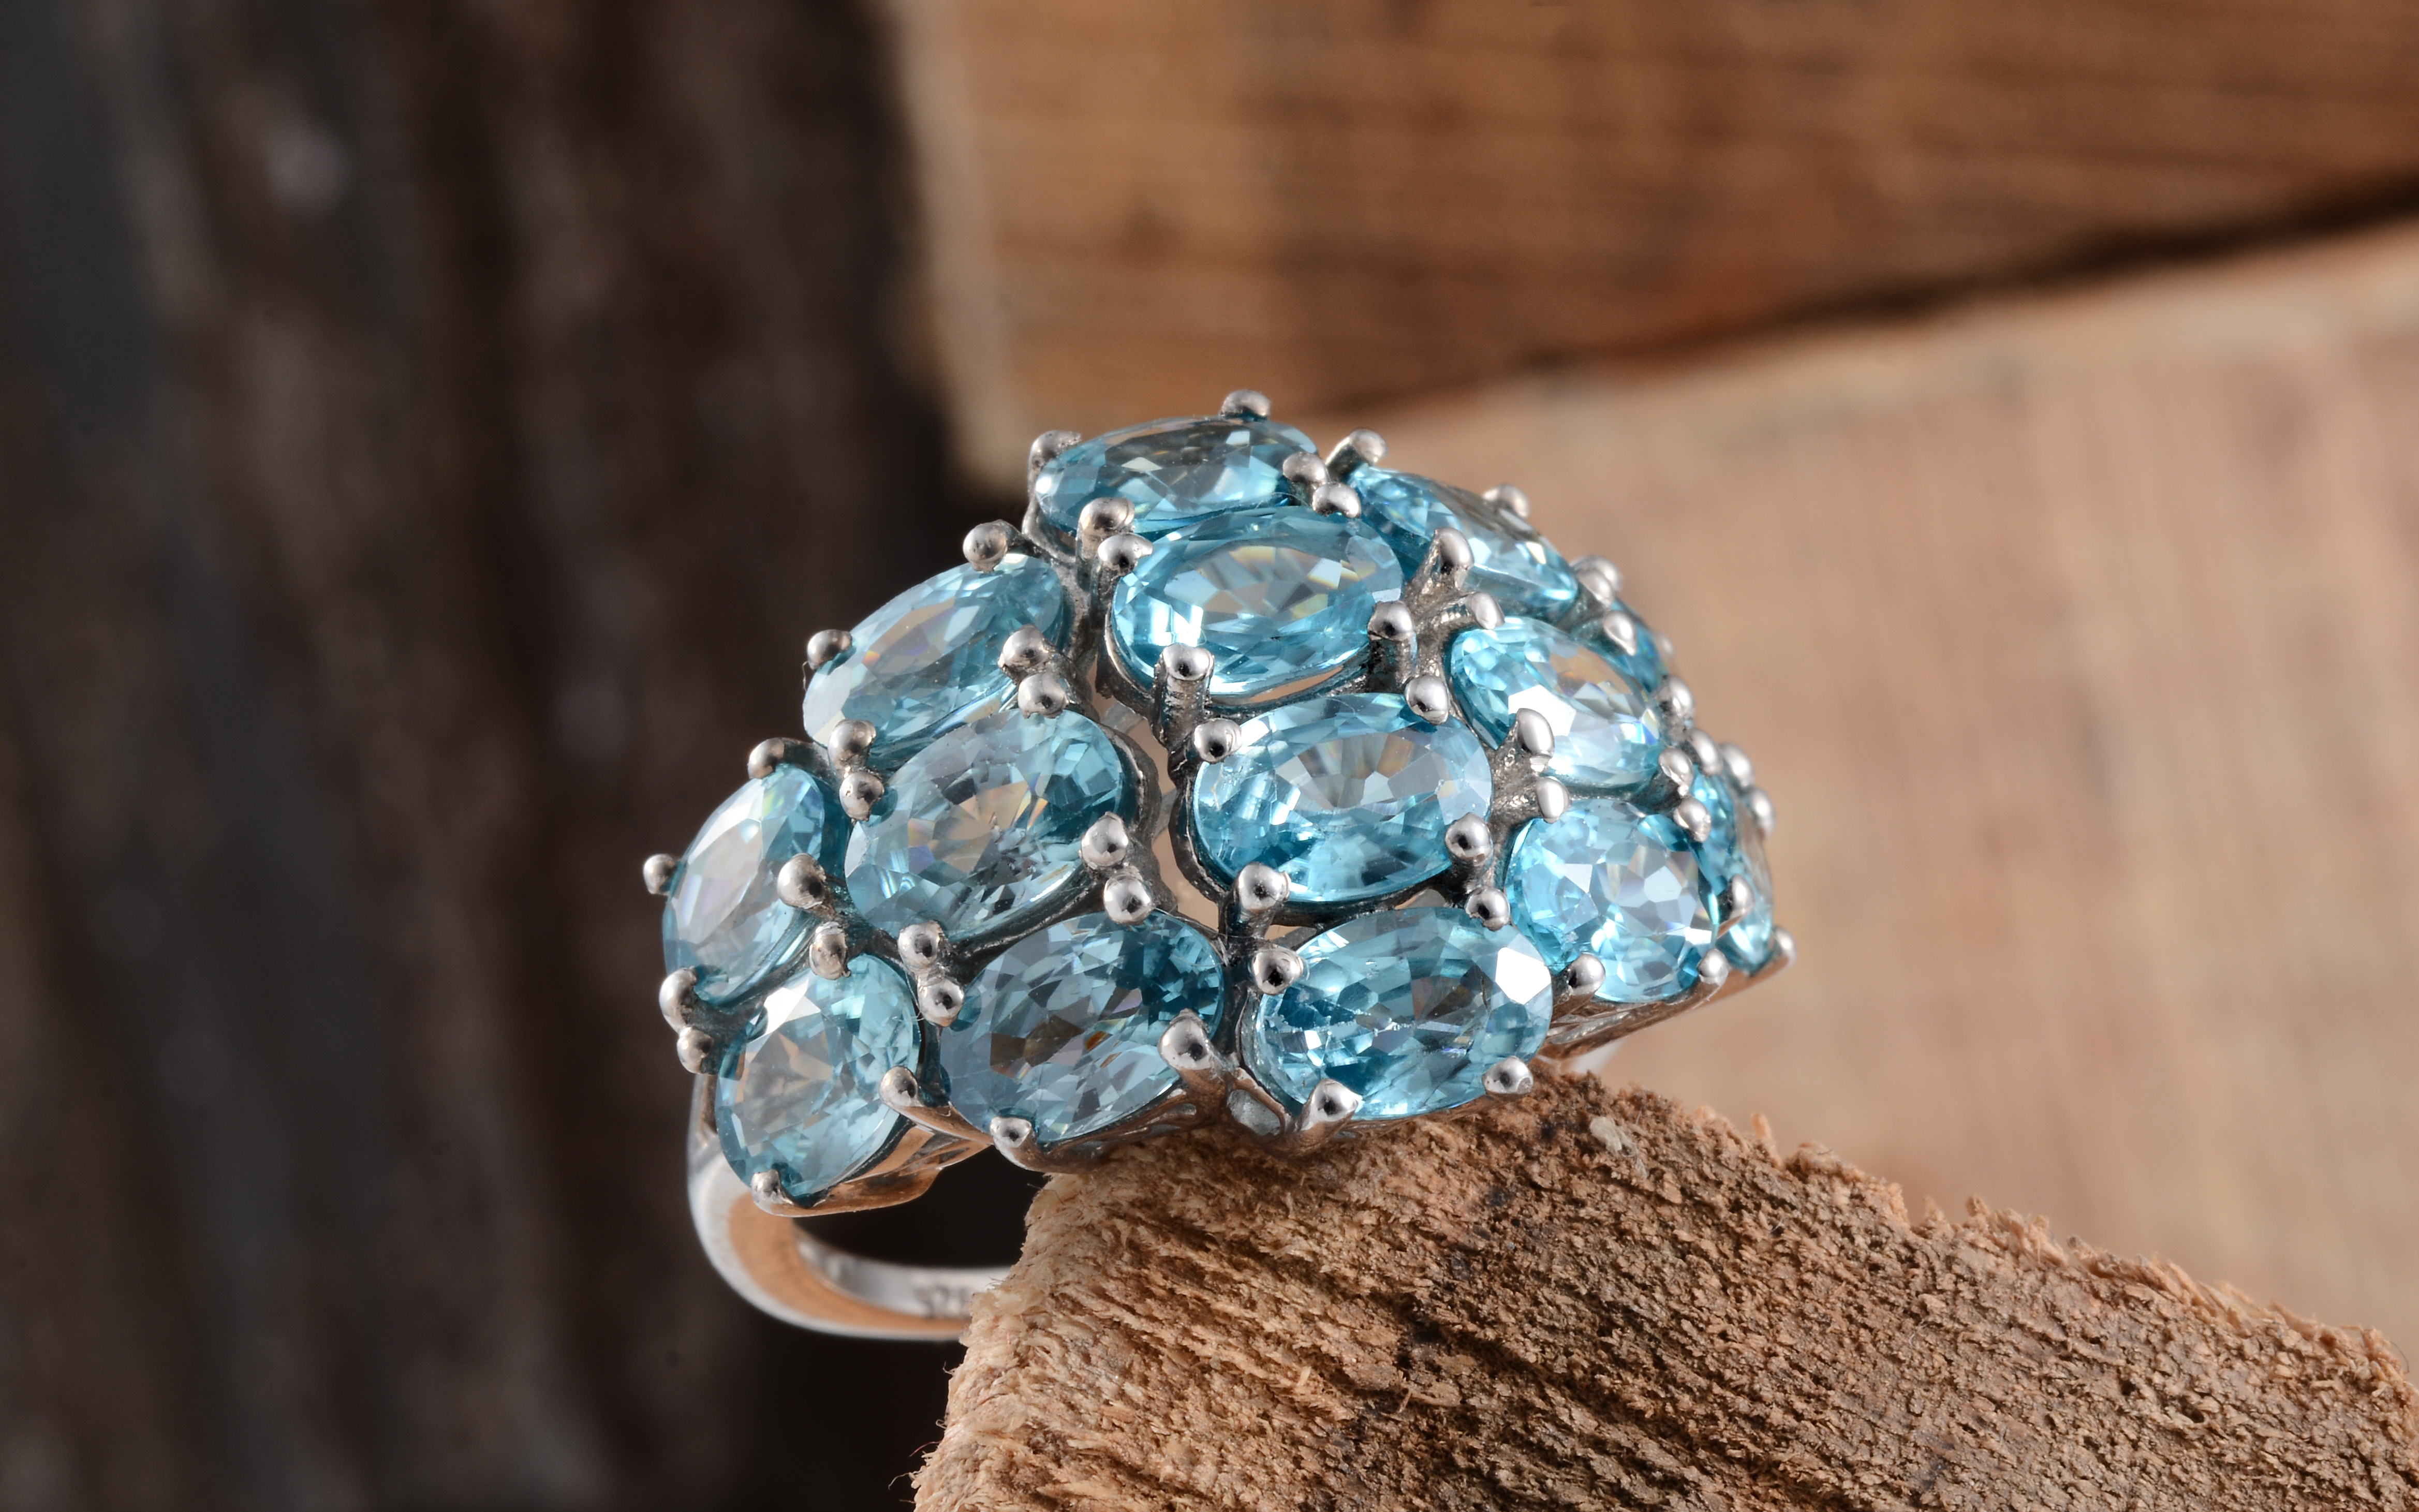 Blue zircon cluster ring on wooden stand.